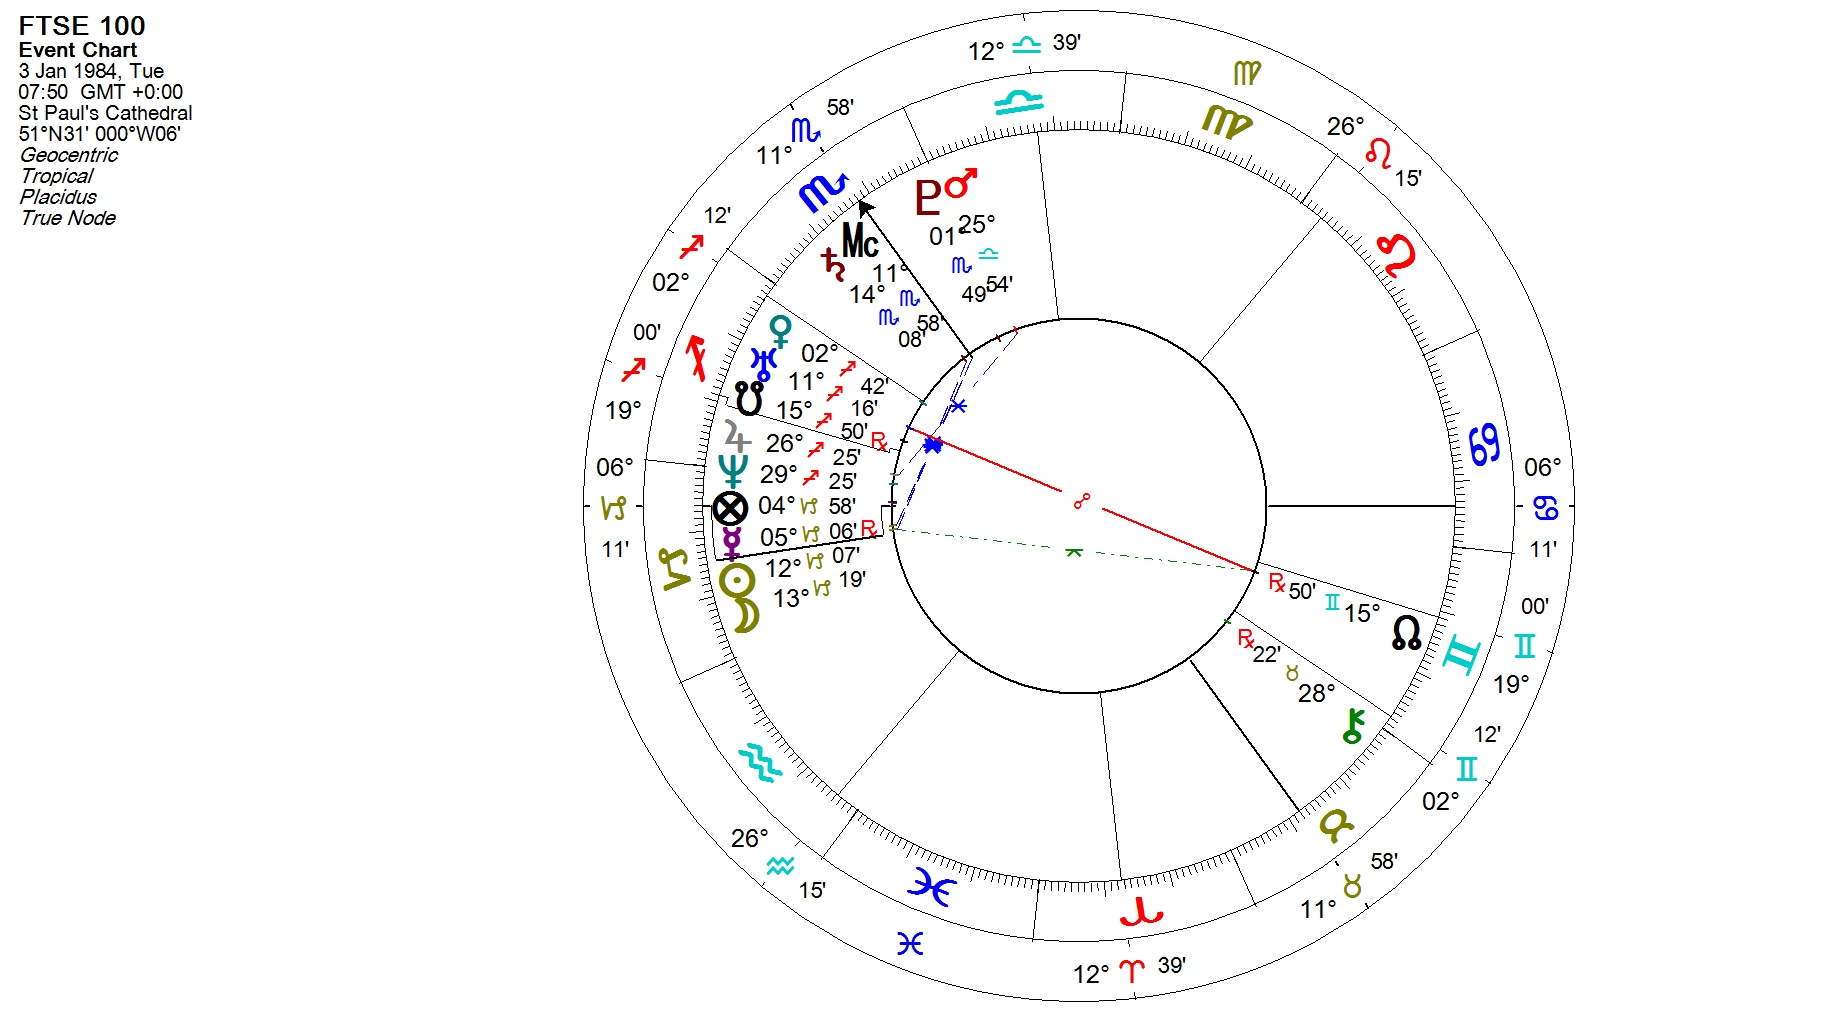 FTSE 100, birth chart, LSE, financial astrology